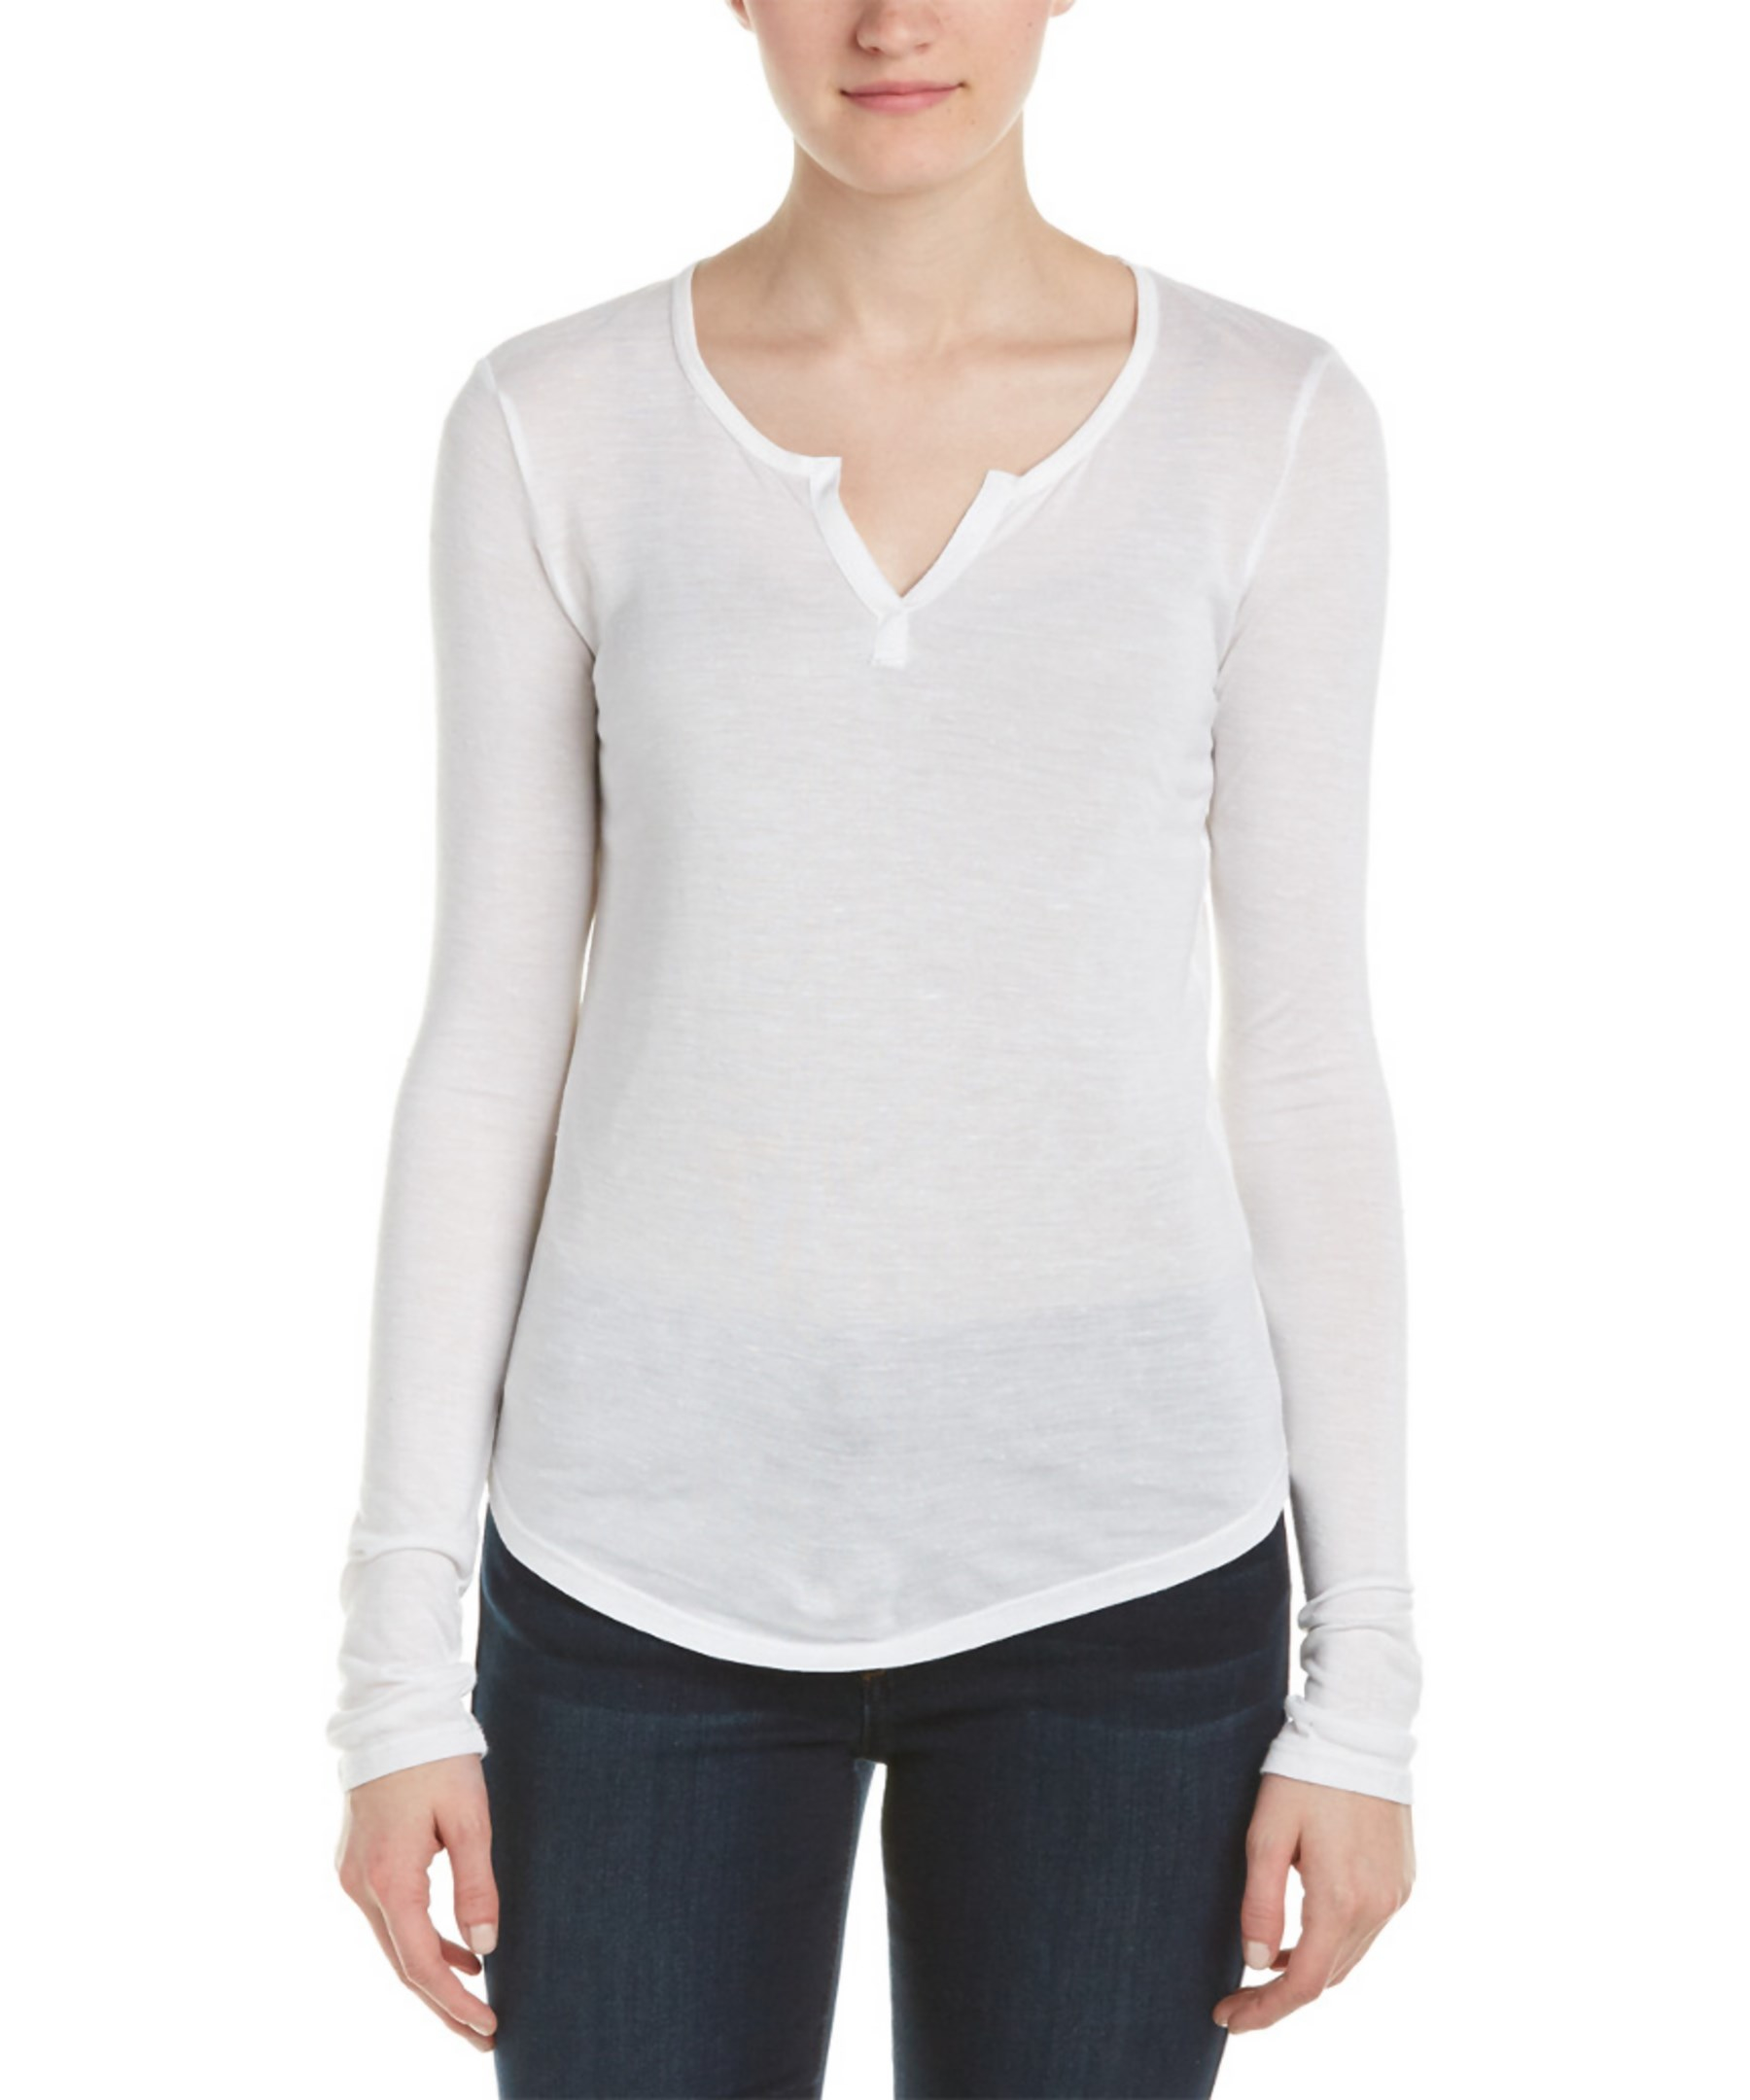 Find great deals on eBay for womens henleys. Shop with confidence.